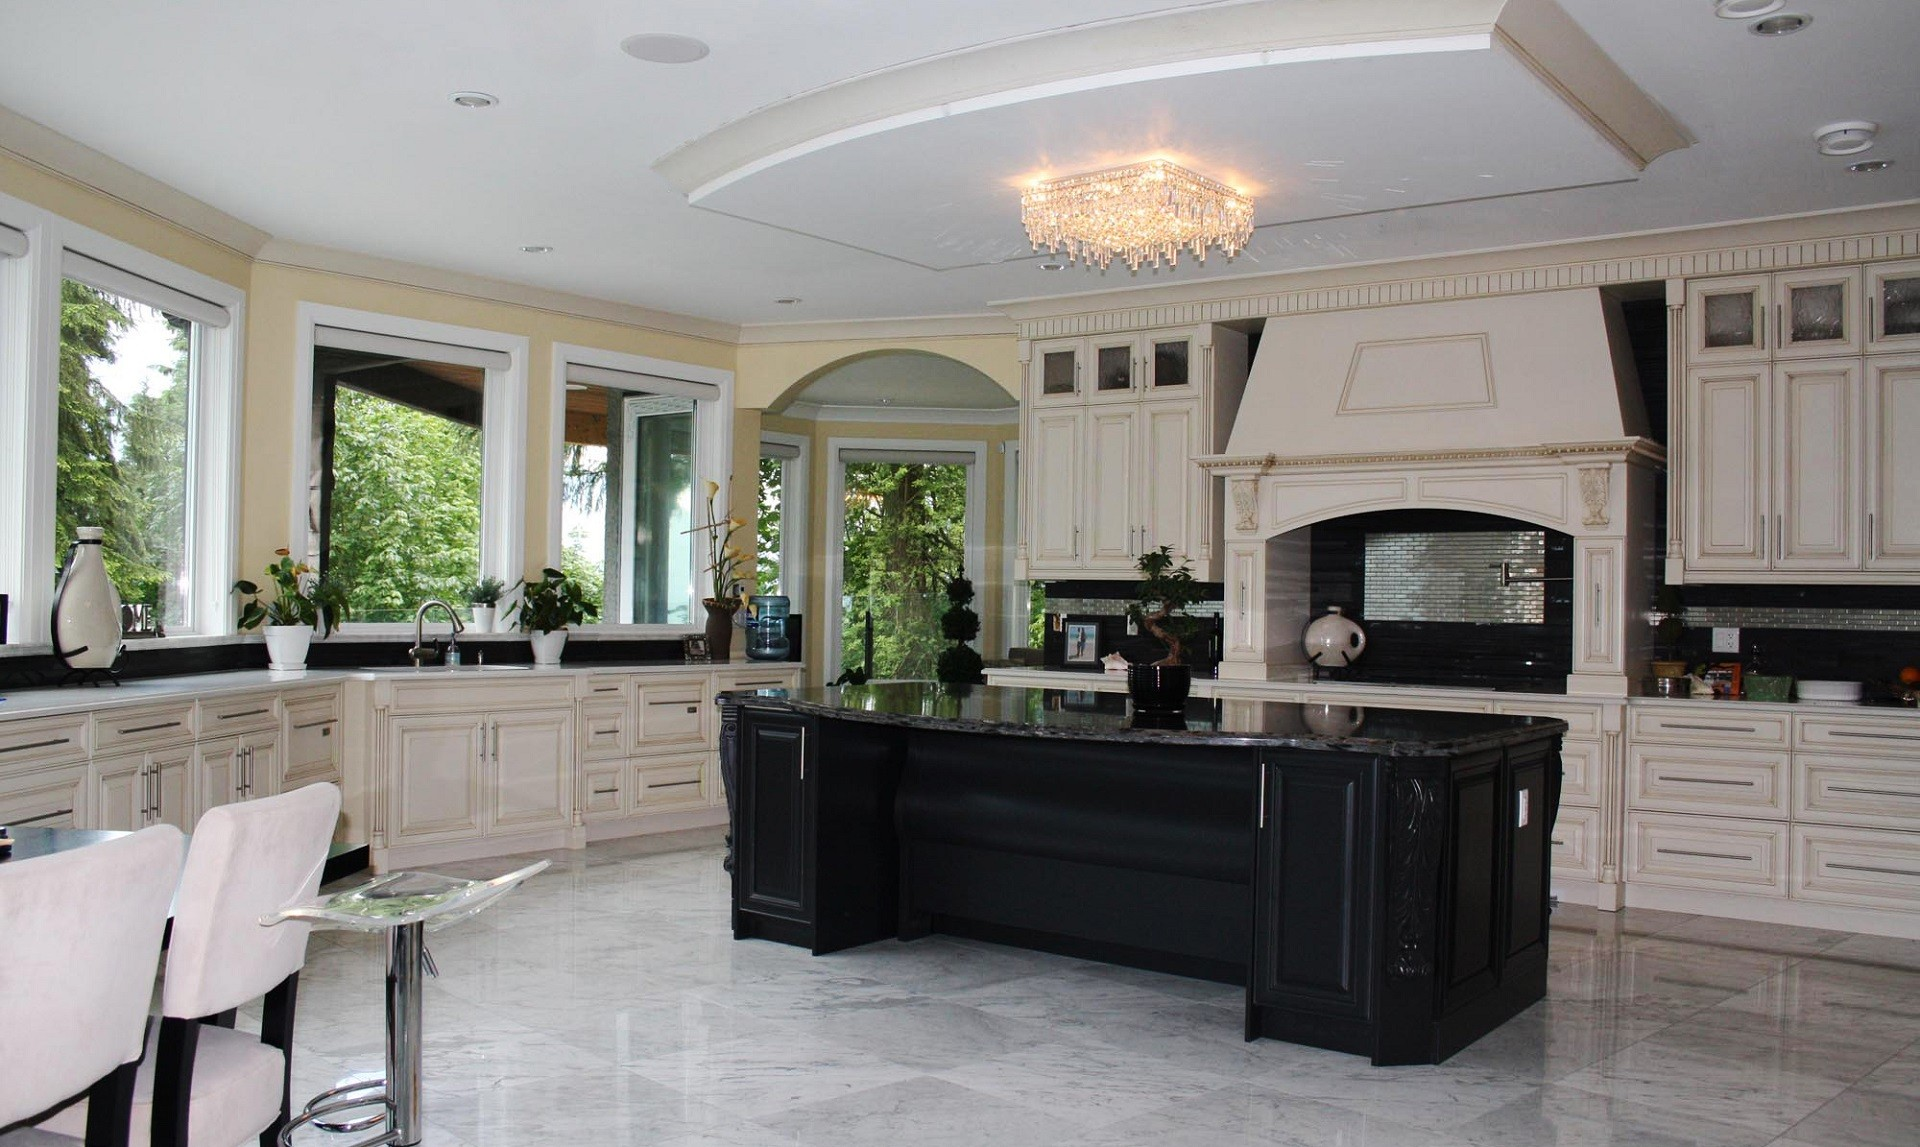 Sunrise Kitchen Cabinets Surrey